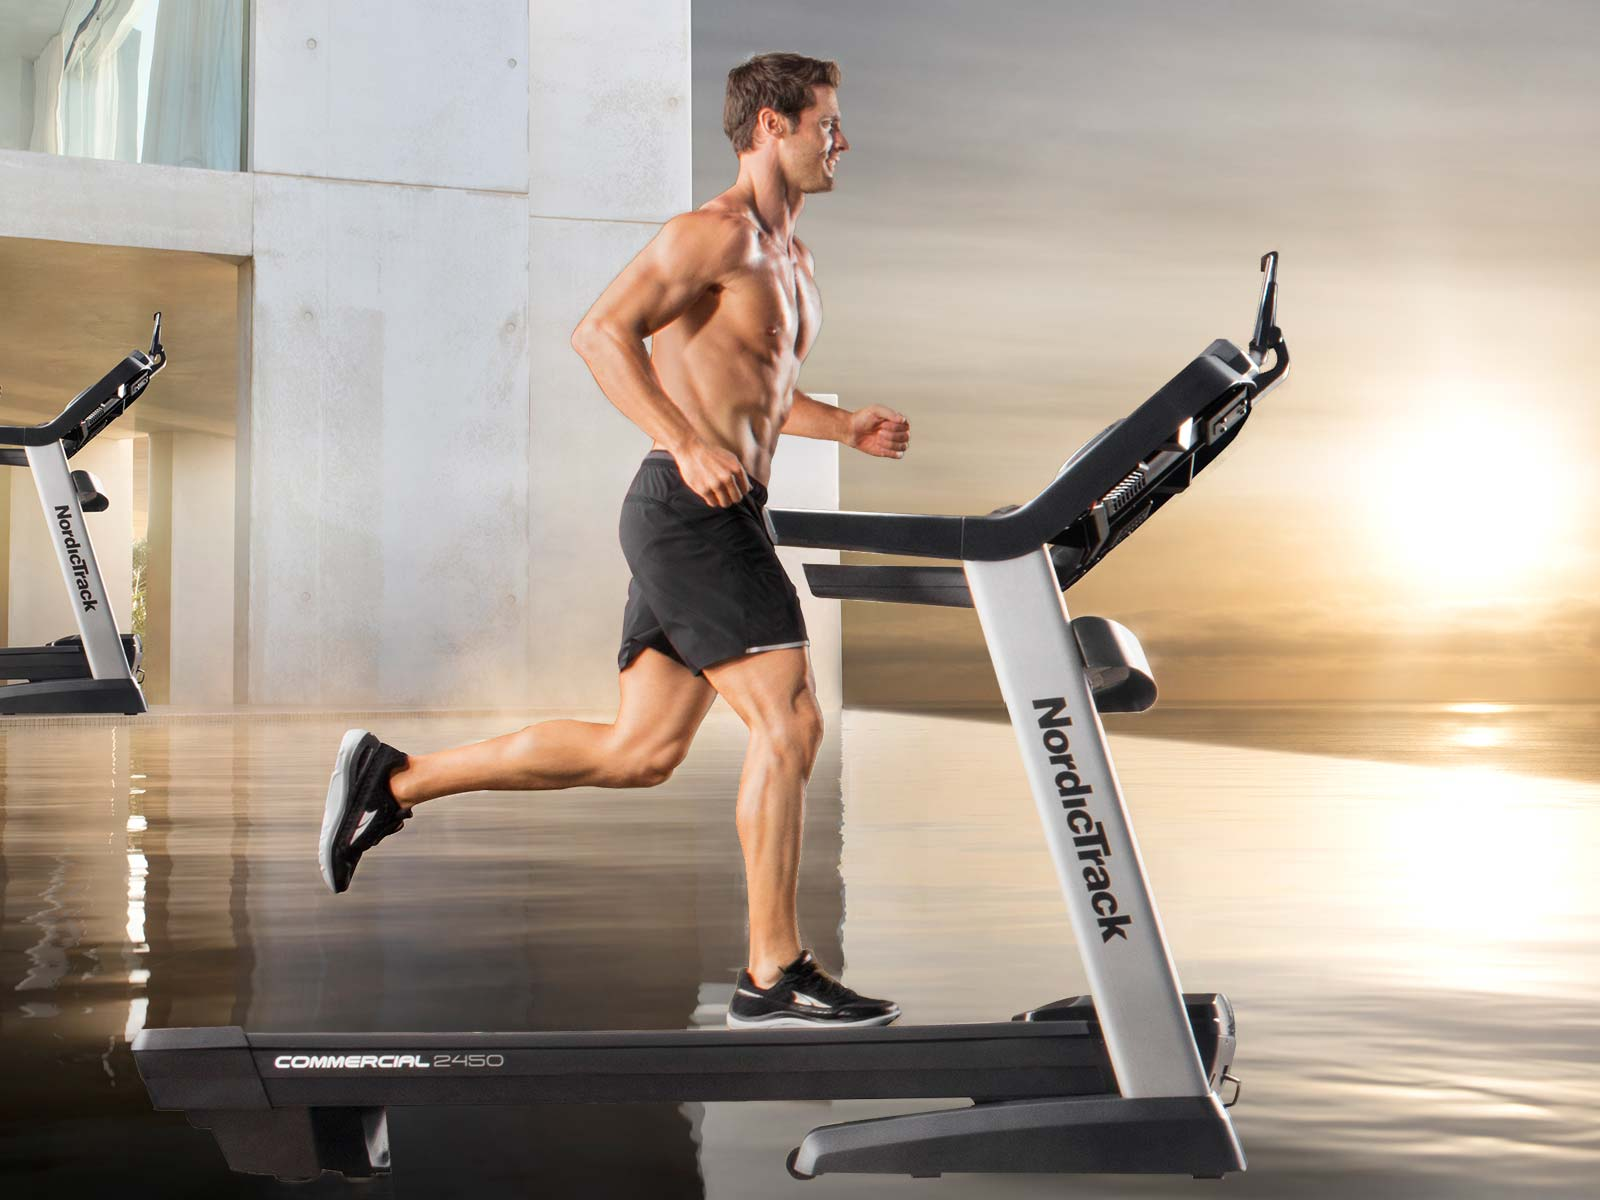 Commercial 2450  Treadmill review by maybe.yes.no